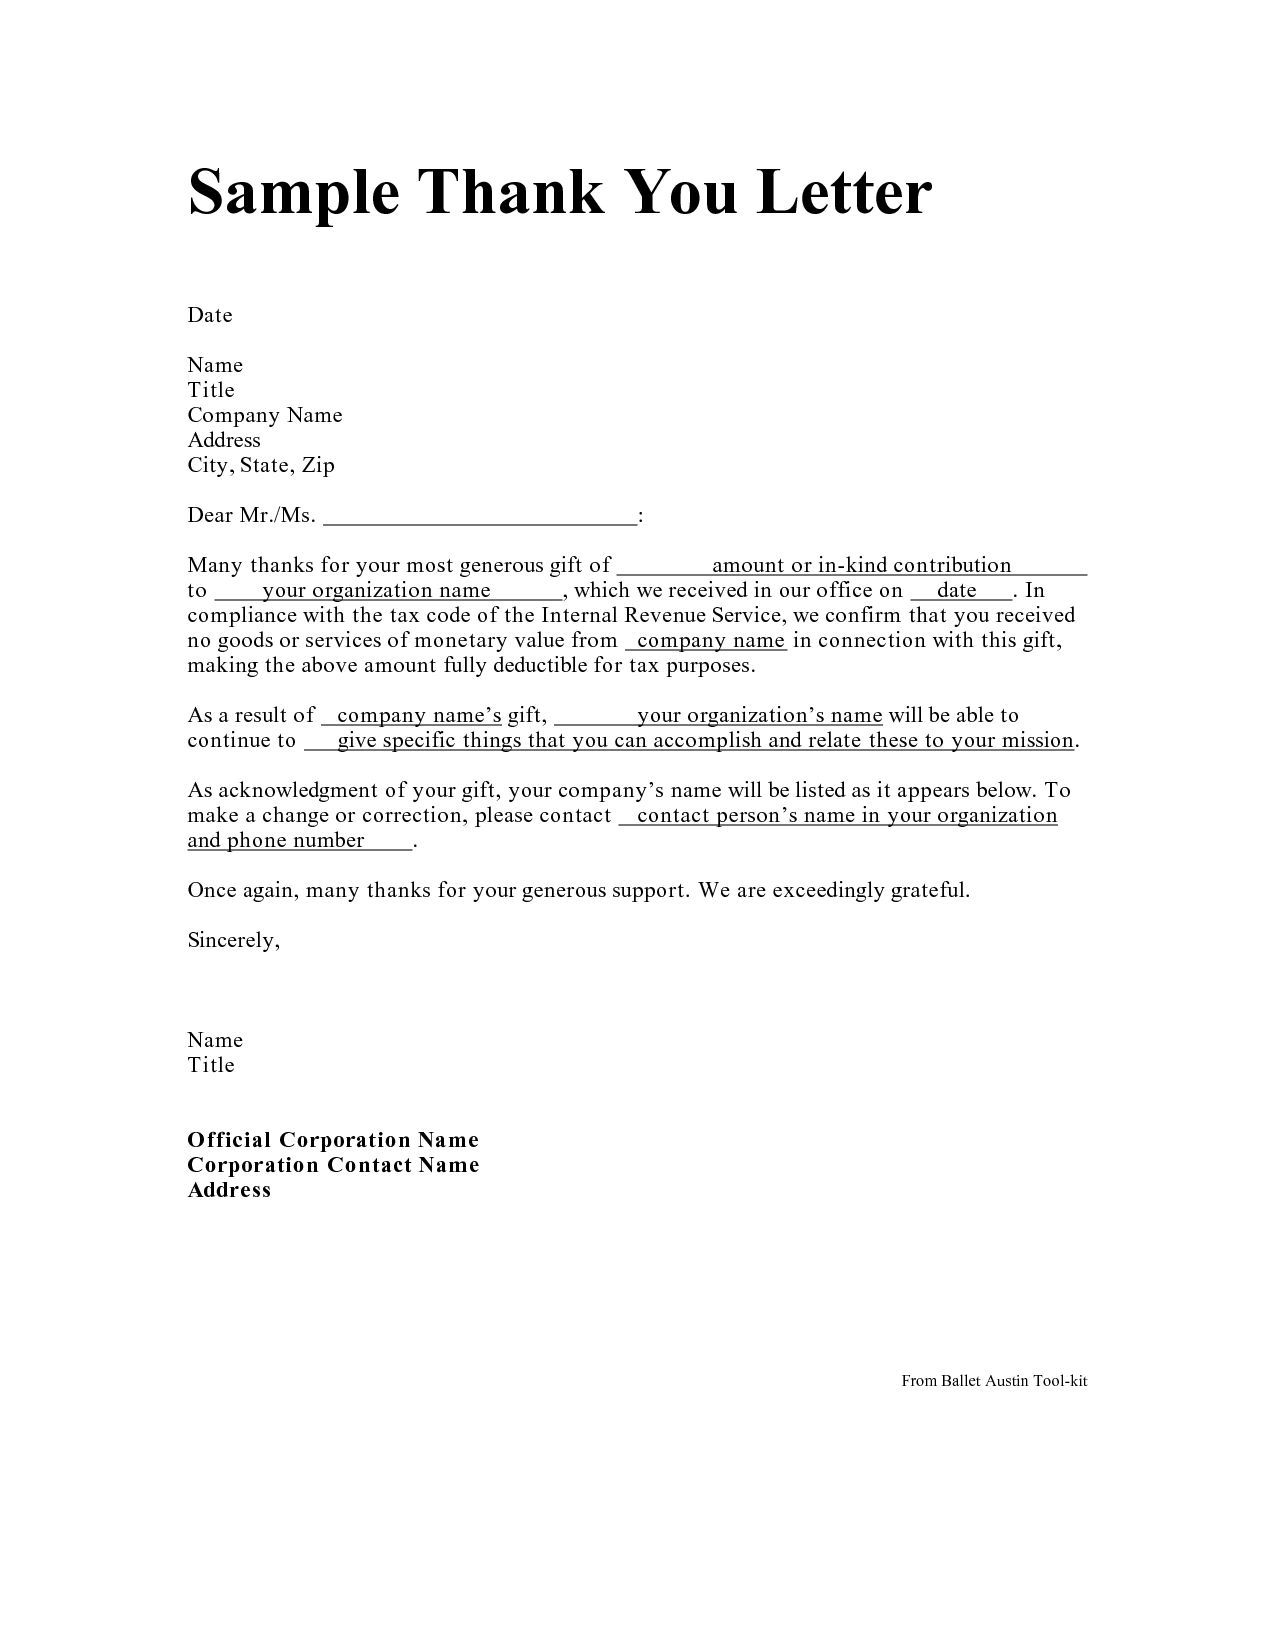 Thank You Letter Template - Personal Thank You Letter Personal Thank You Letter Samples